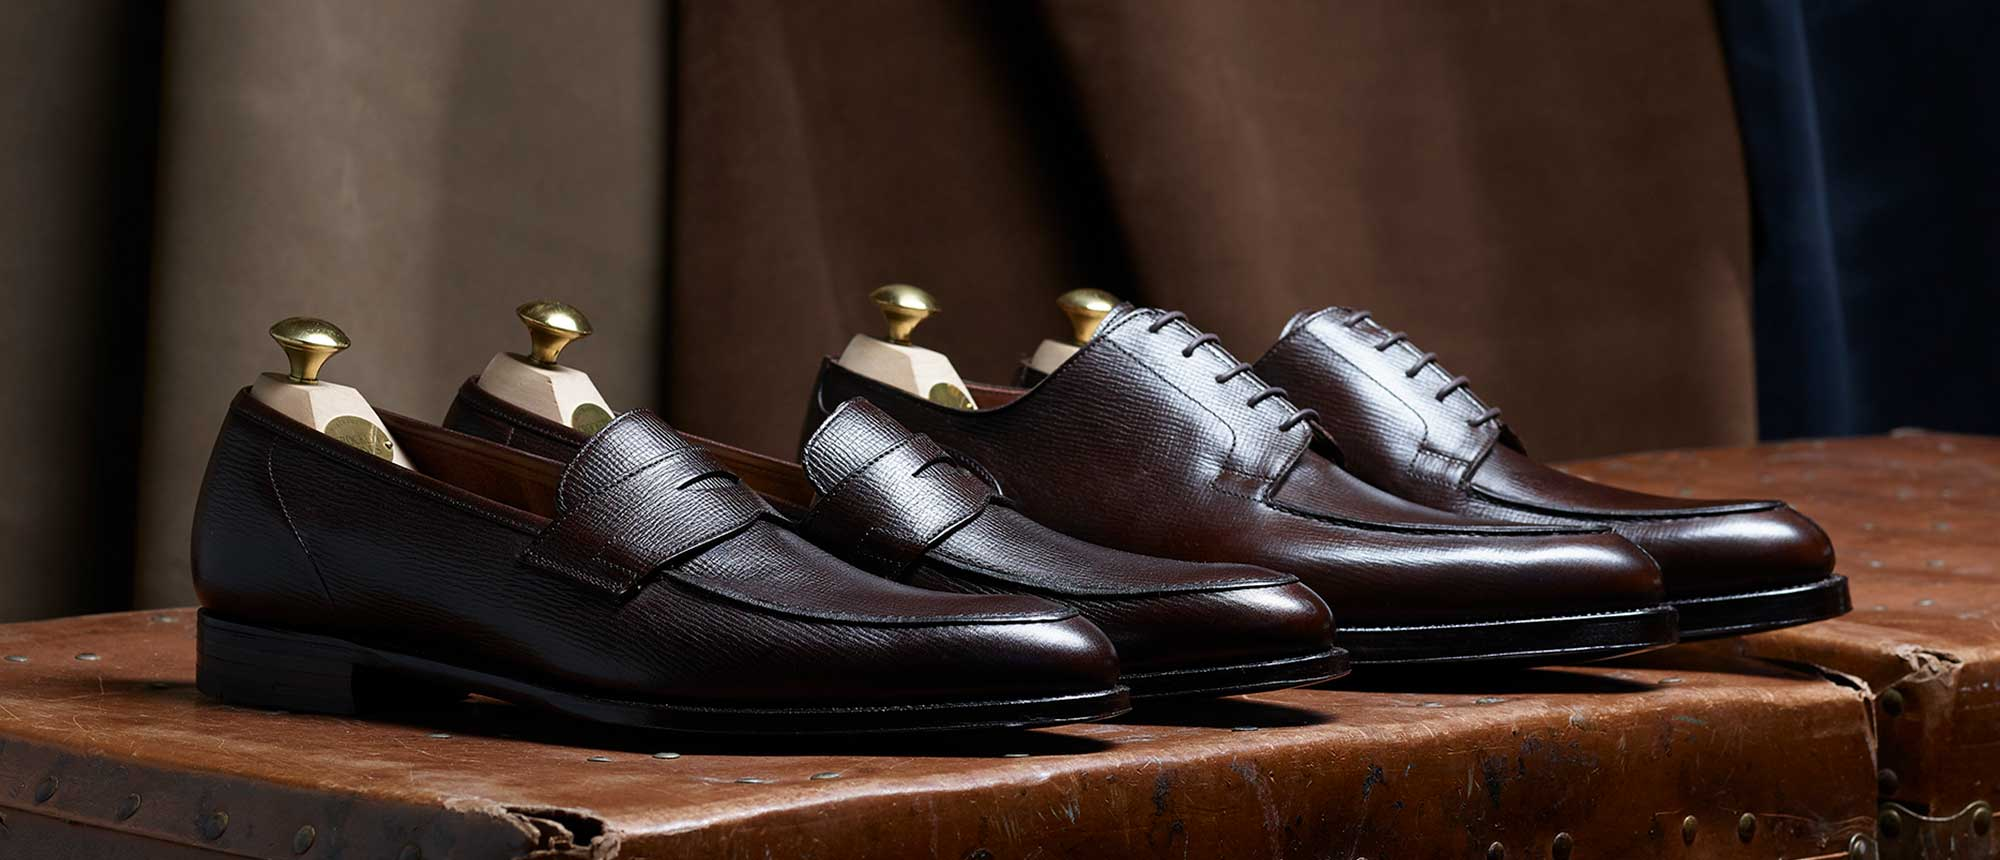 Crockett & Jones - SS19 Hand Grade Collection...Willow Grain